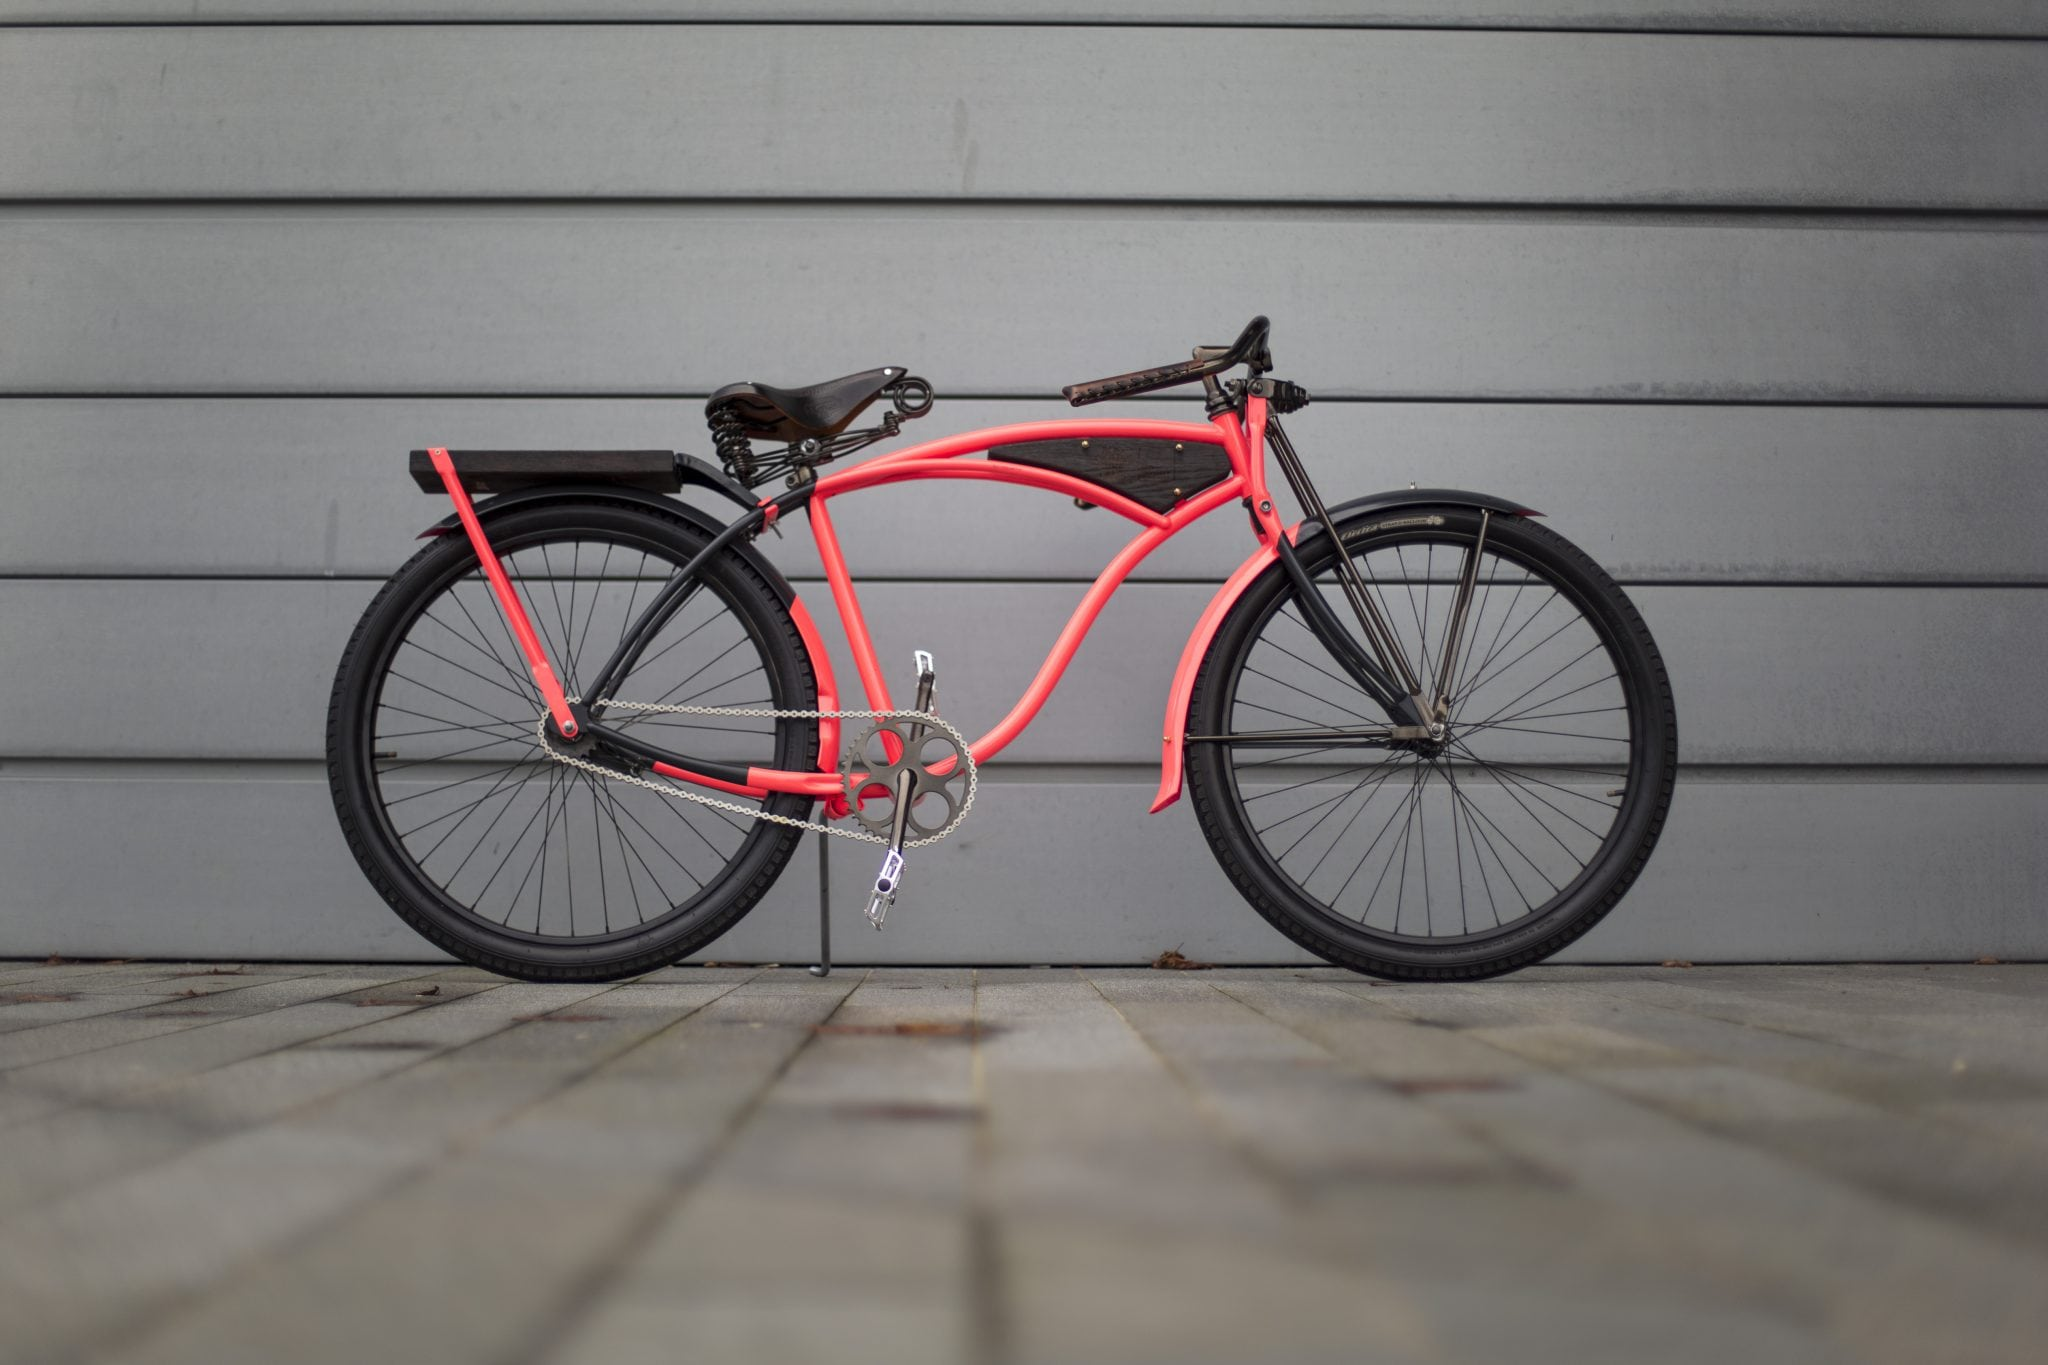 AUB Bike to be displayed at 'In The Frame' Exhibition